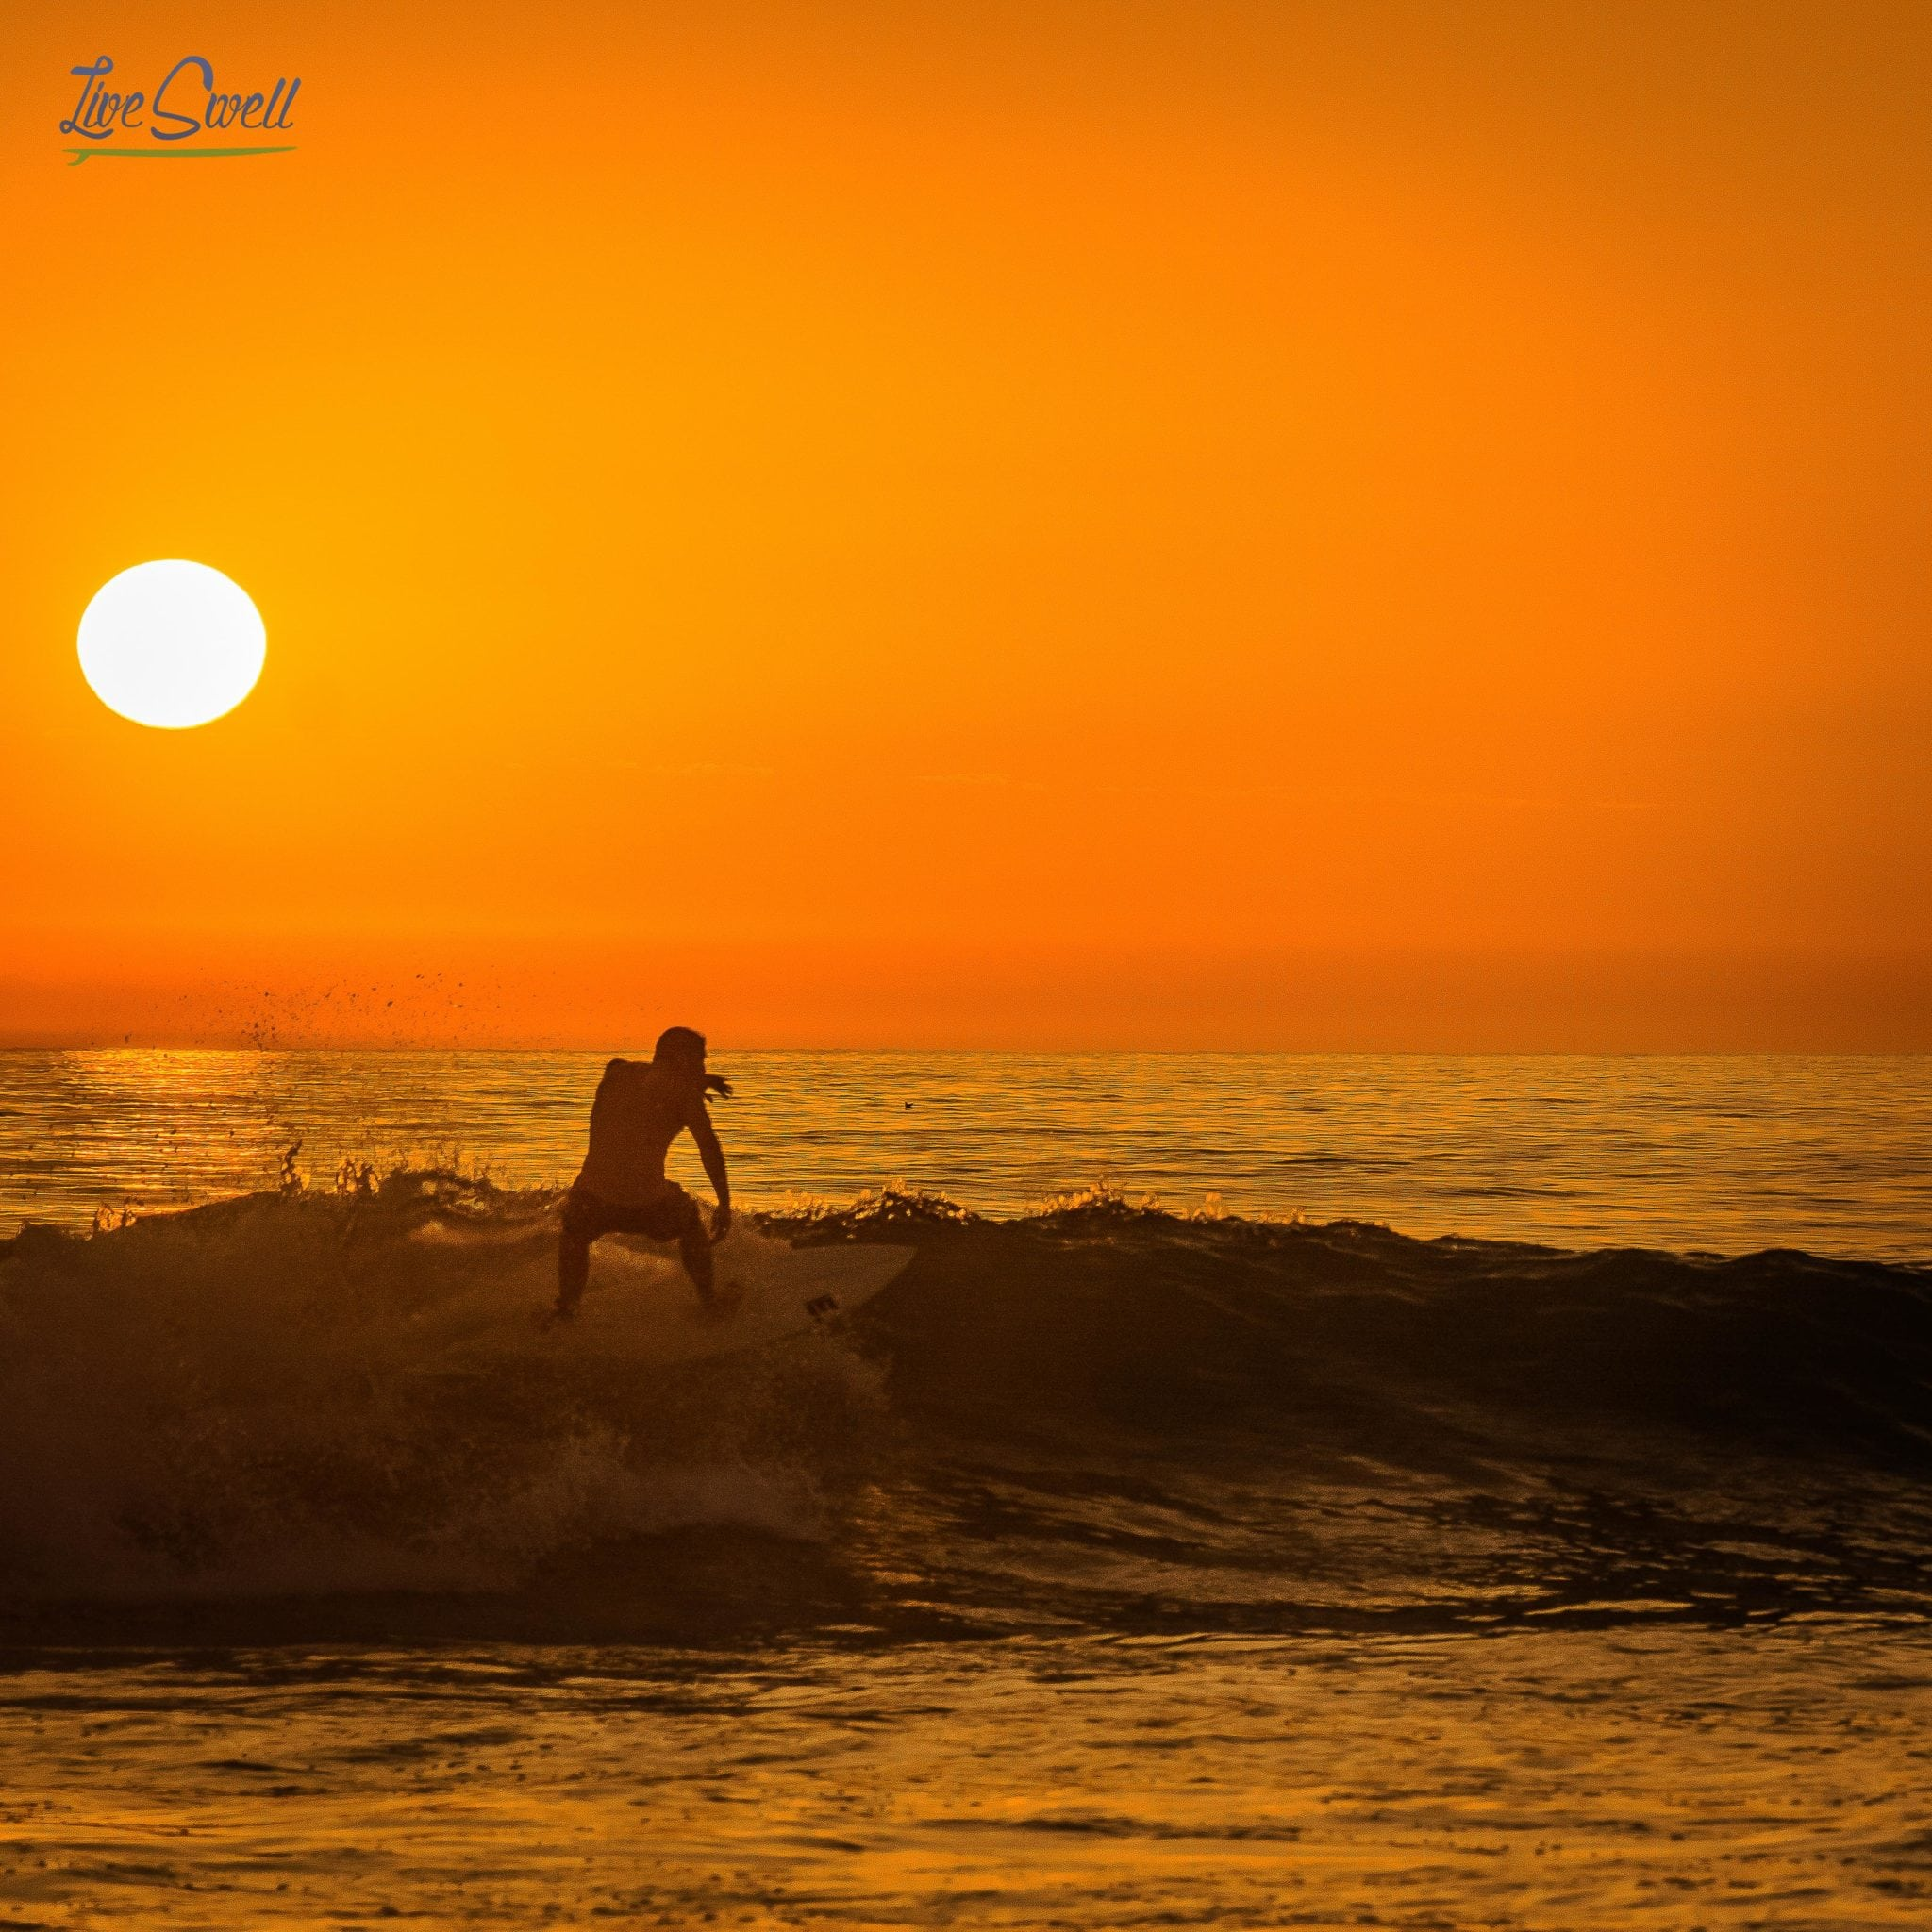 Mike Live Swell San Diego Mission Beach Sunset Surfing